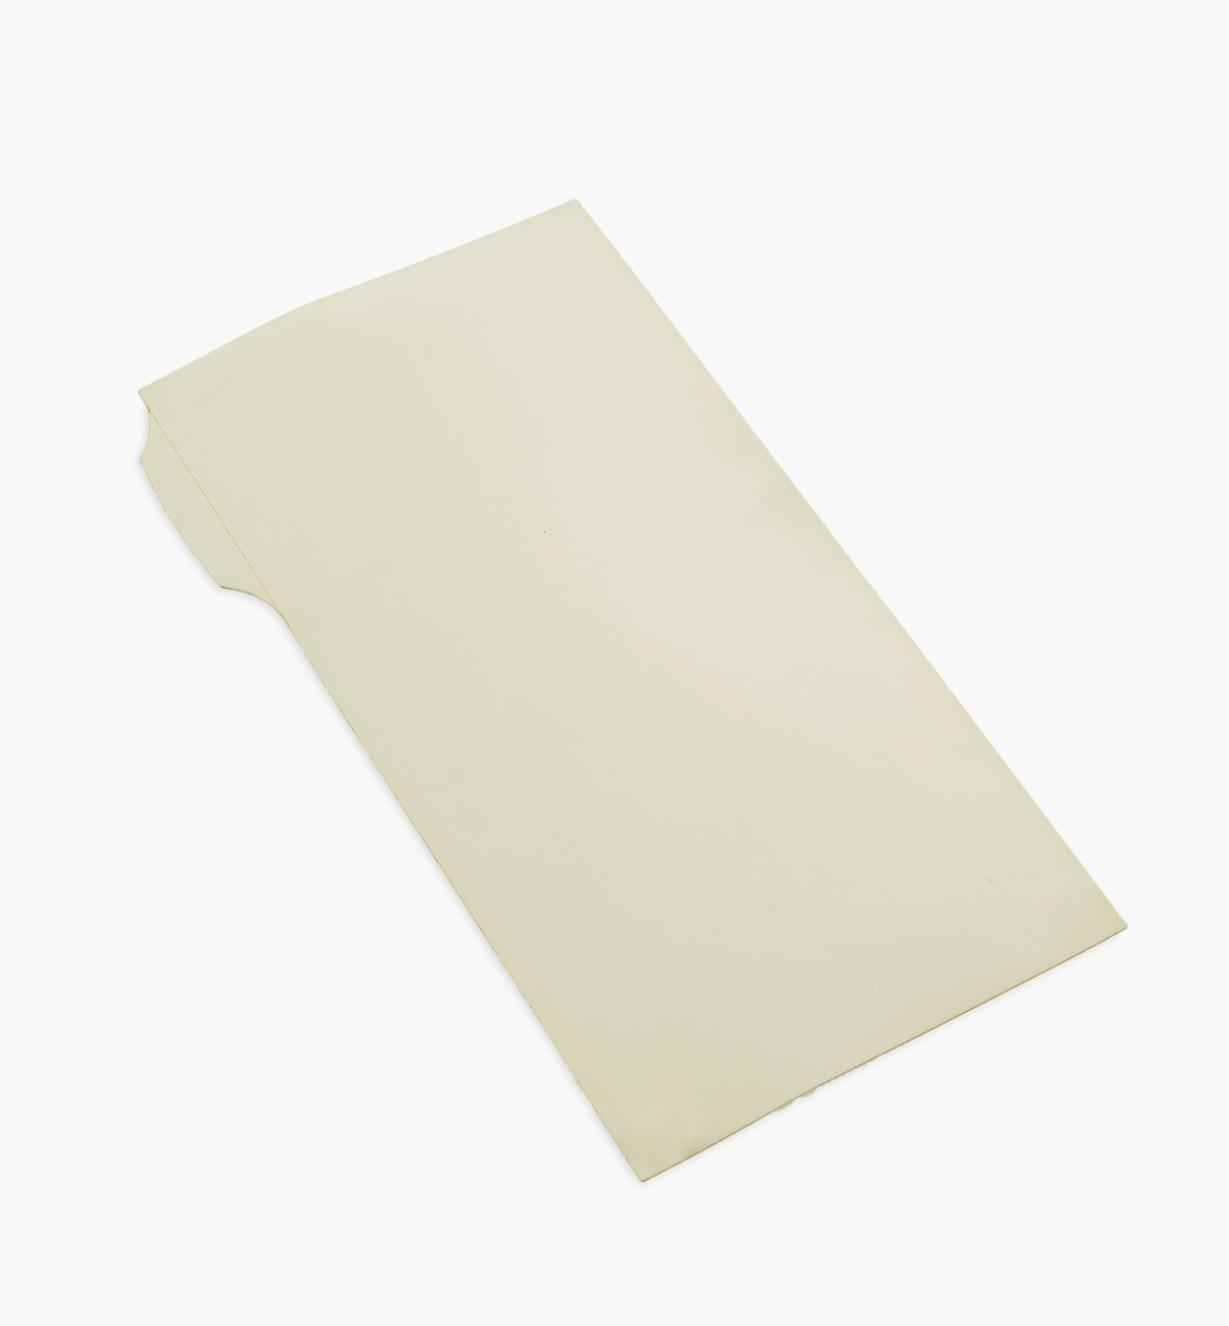 "54K9602 - 0.5µ PSA Diamond Film, 3"" x 6"" (beige)"